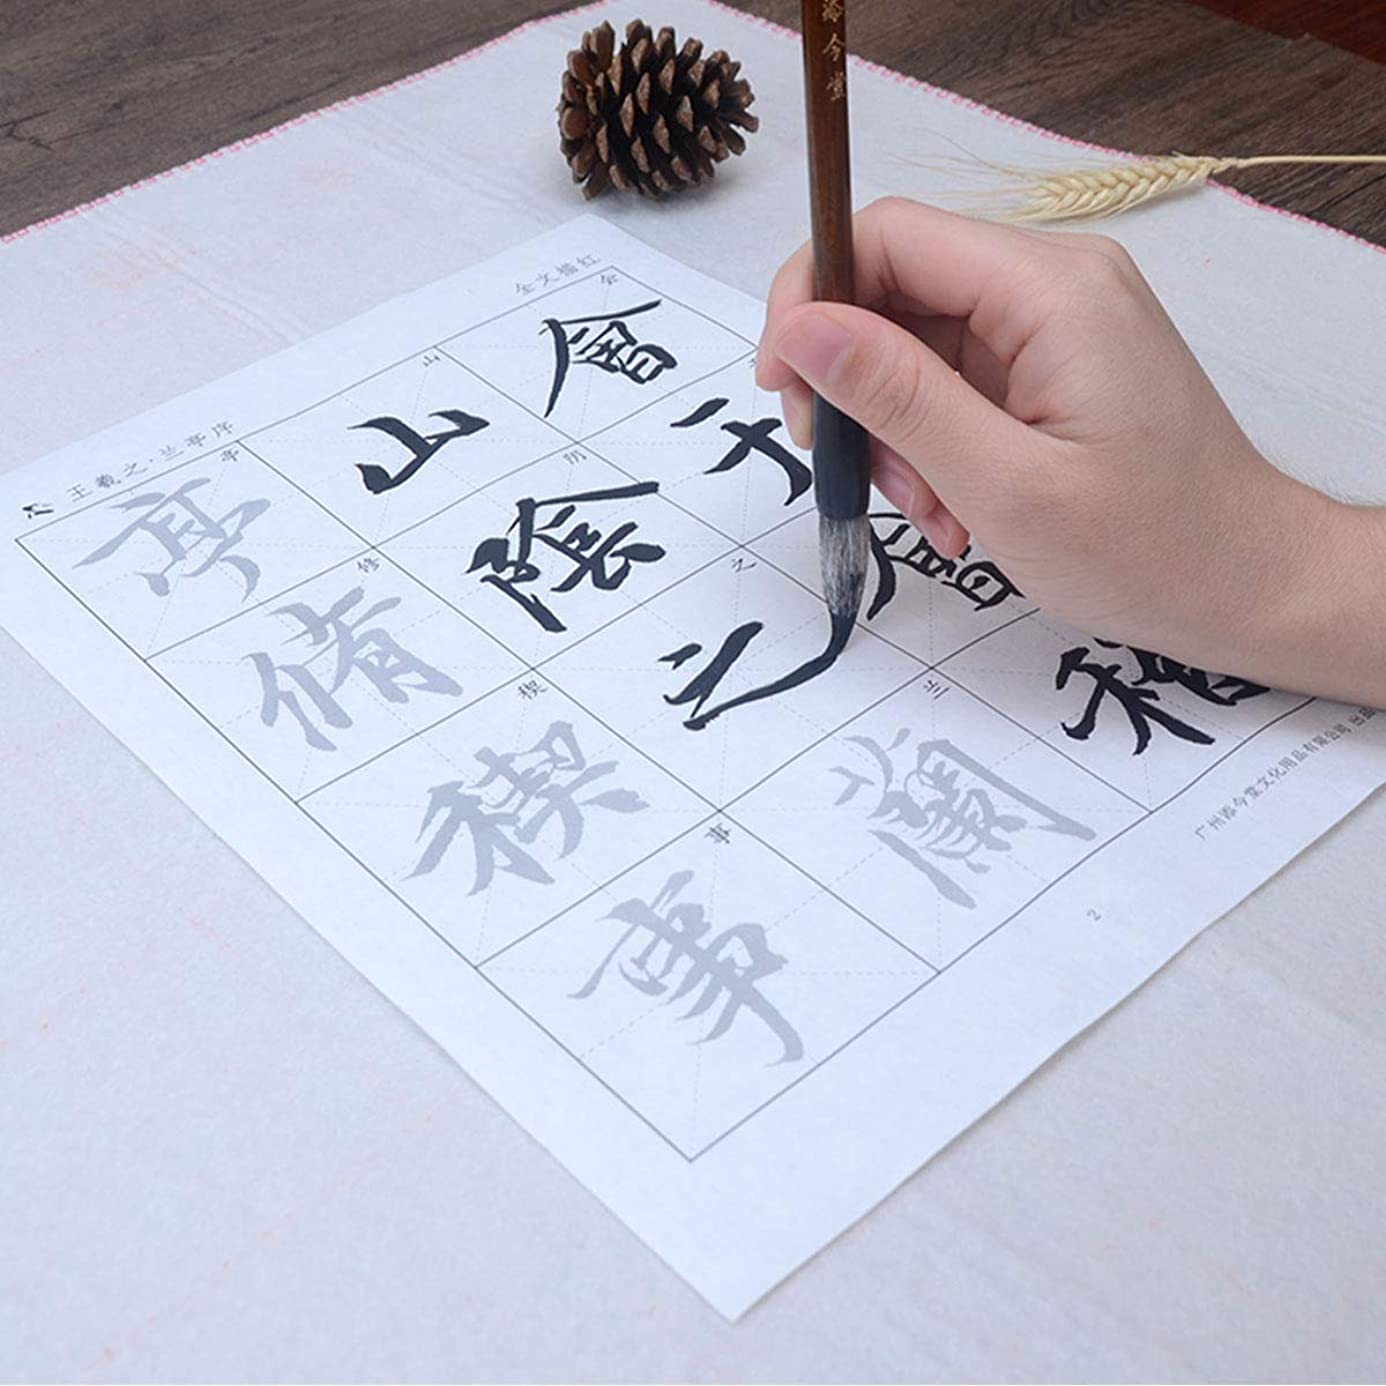 Tianjintang A4 Size Chinese Calligraphy Big Characters Tracing Writing Xuan Rice Paper Sheets for Beginners (Wang Xizhi王羲之-The Orchid Pavilion兰亭集序) ncc0551891